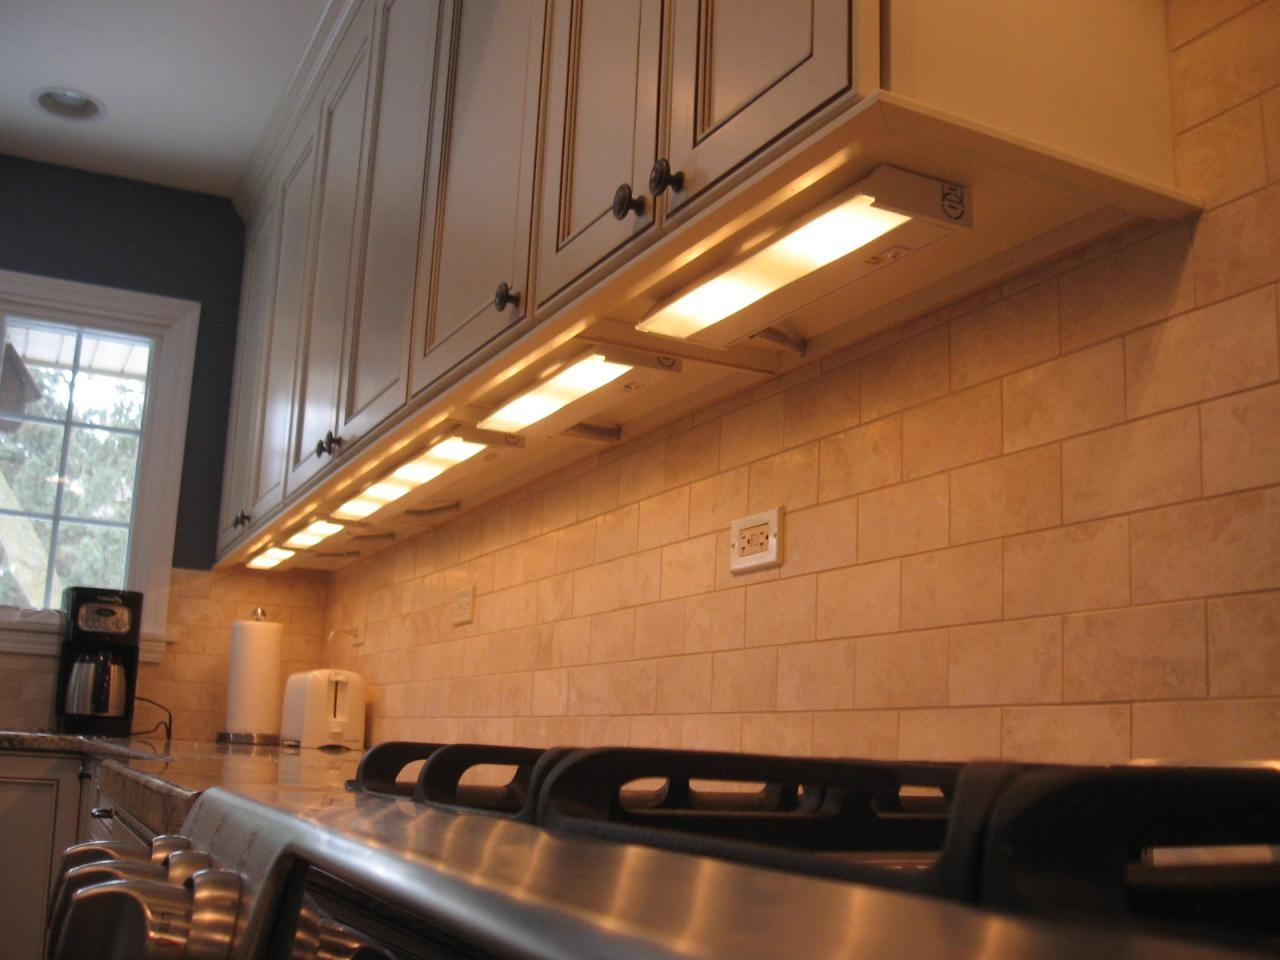 Kitchen Under Cabinet Lighting For Kitchen Under Cupboard Lights (Image 13 of 25)